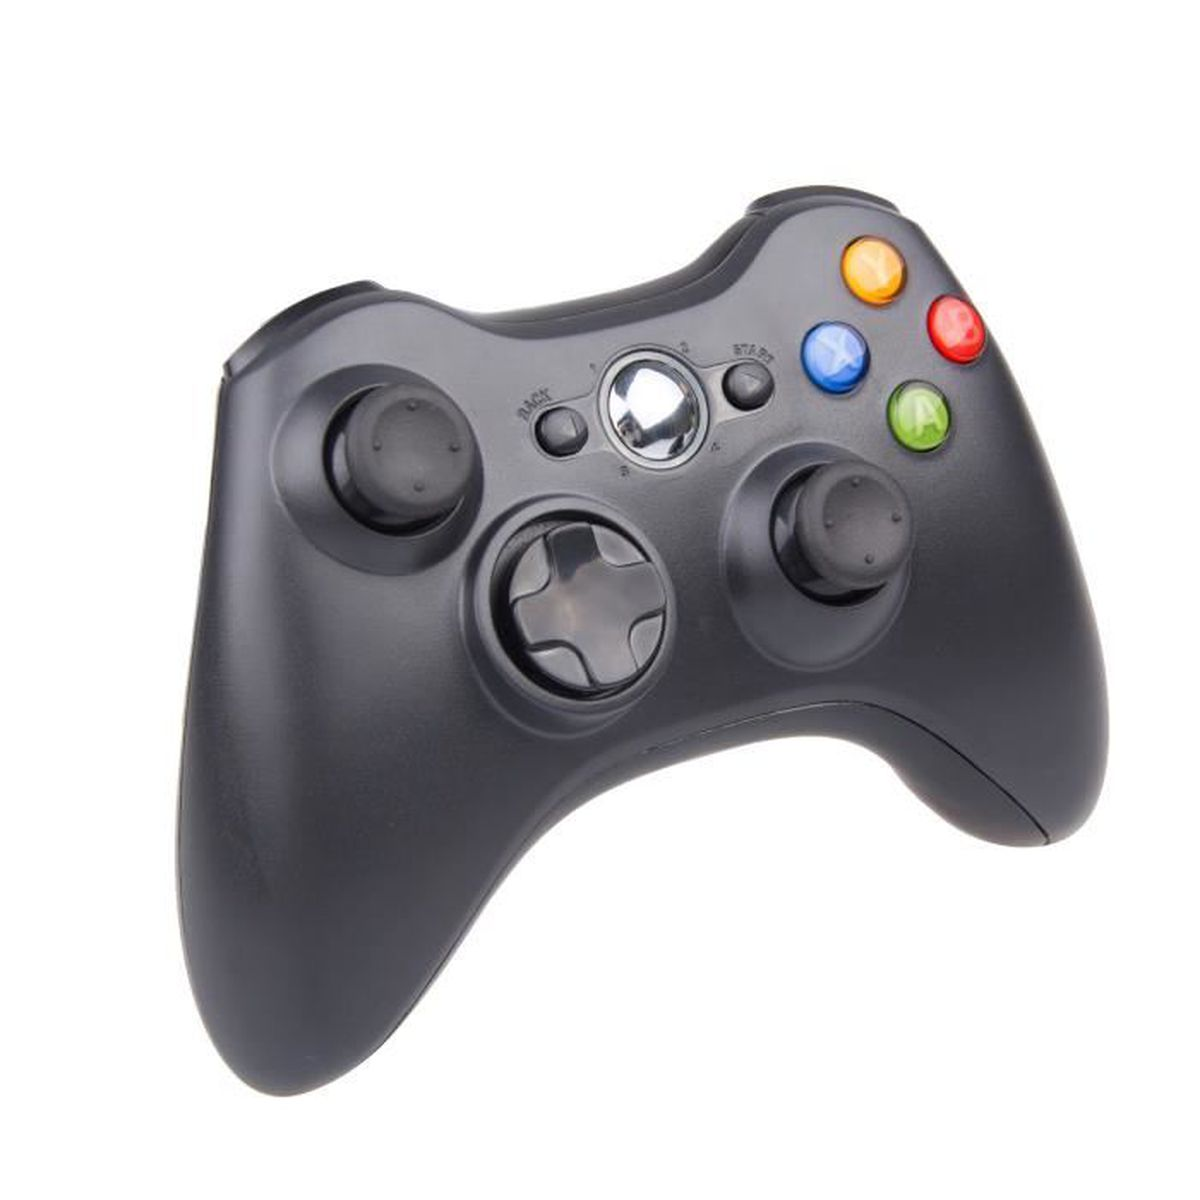 manette de jeu sans fil xbox pour xbox 360 2 4ghz gamepad sans fil manette contr leur de jeu. Black Bedroom Furniture Sets. Home Design Ideas